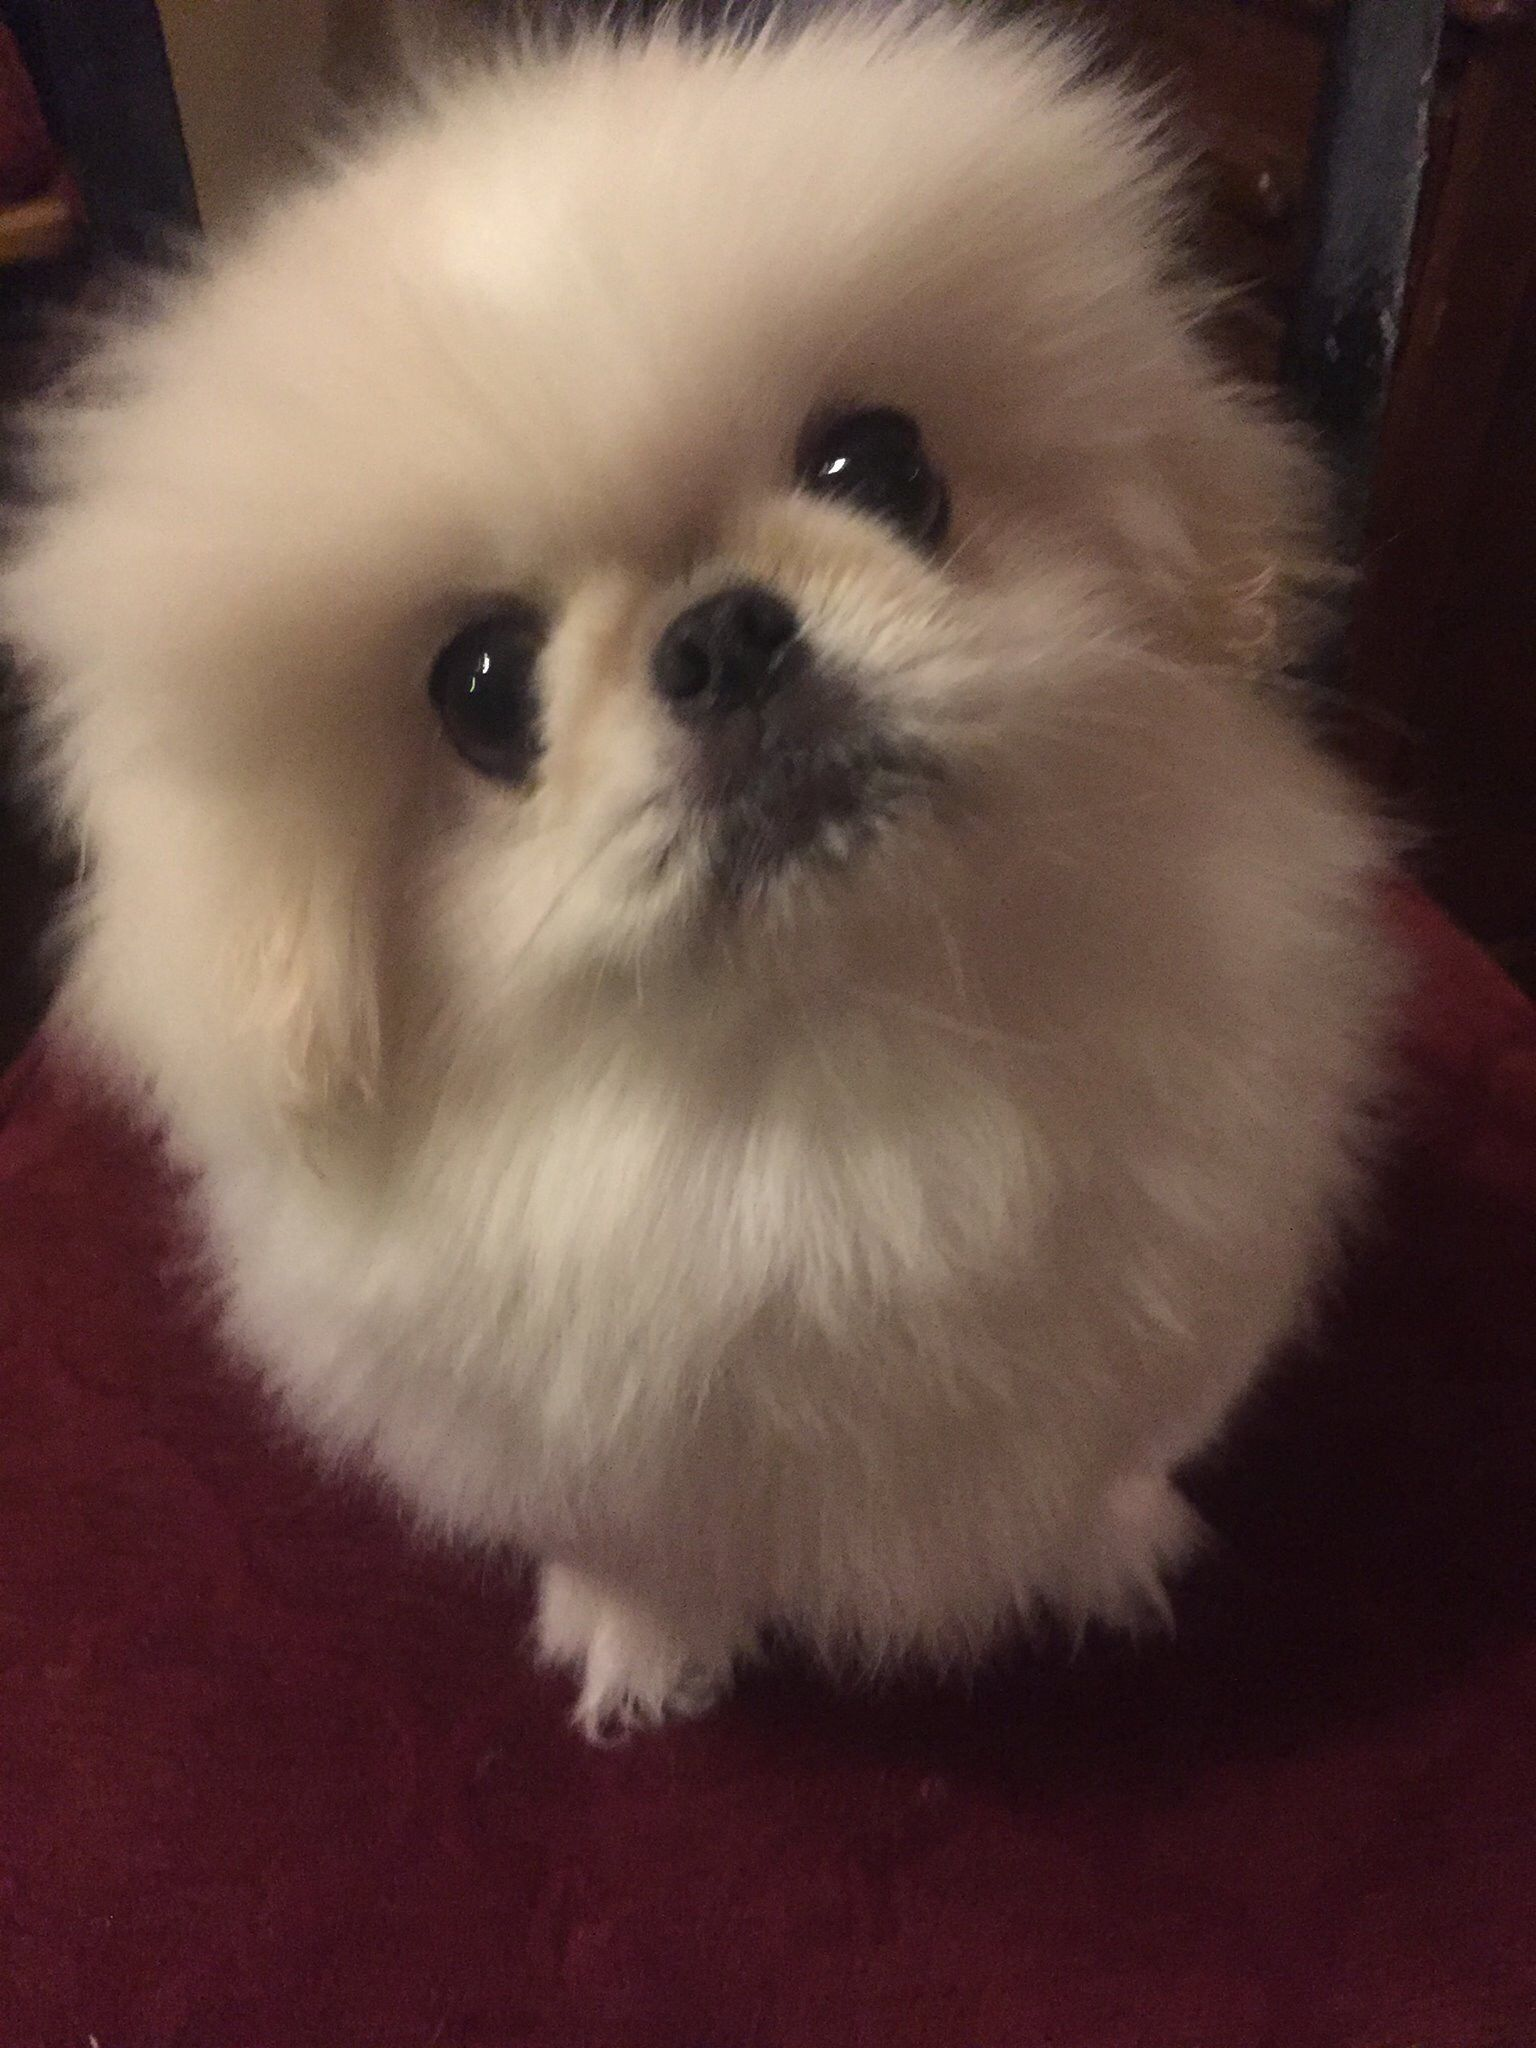 Hi Baby You Re Such A Good Boy Beautiful White Pekingese Puppy Picturesofwhitepuppies Pekingese Puppies Puppies Pekingese